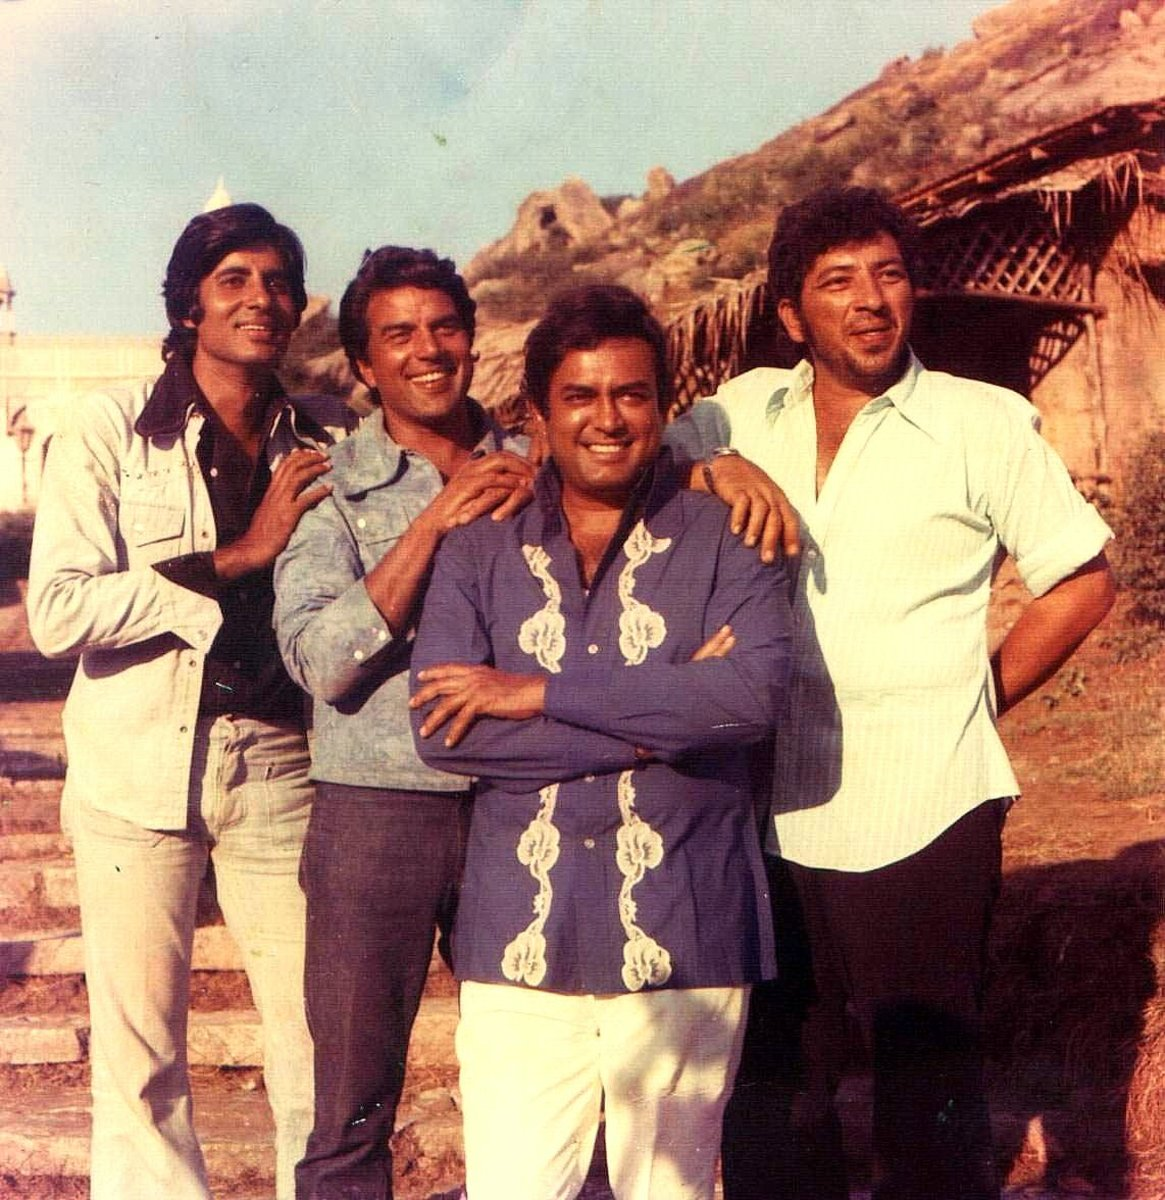 One of the rarest photos of the cast of Sholay